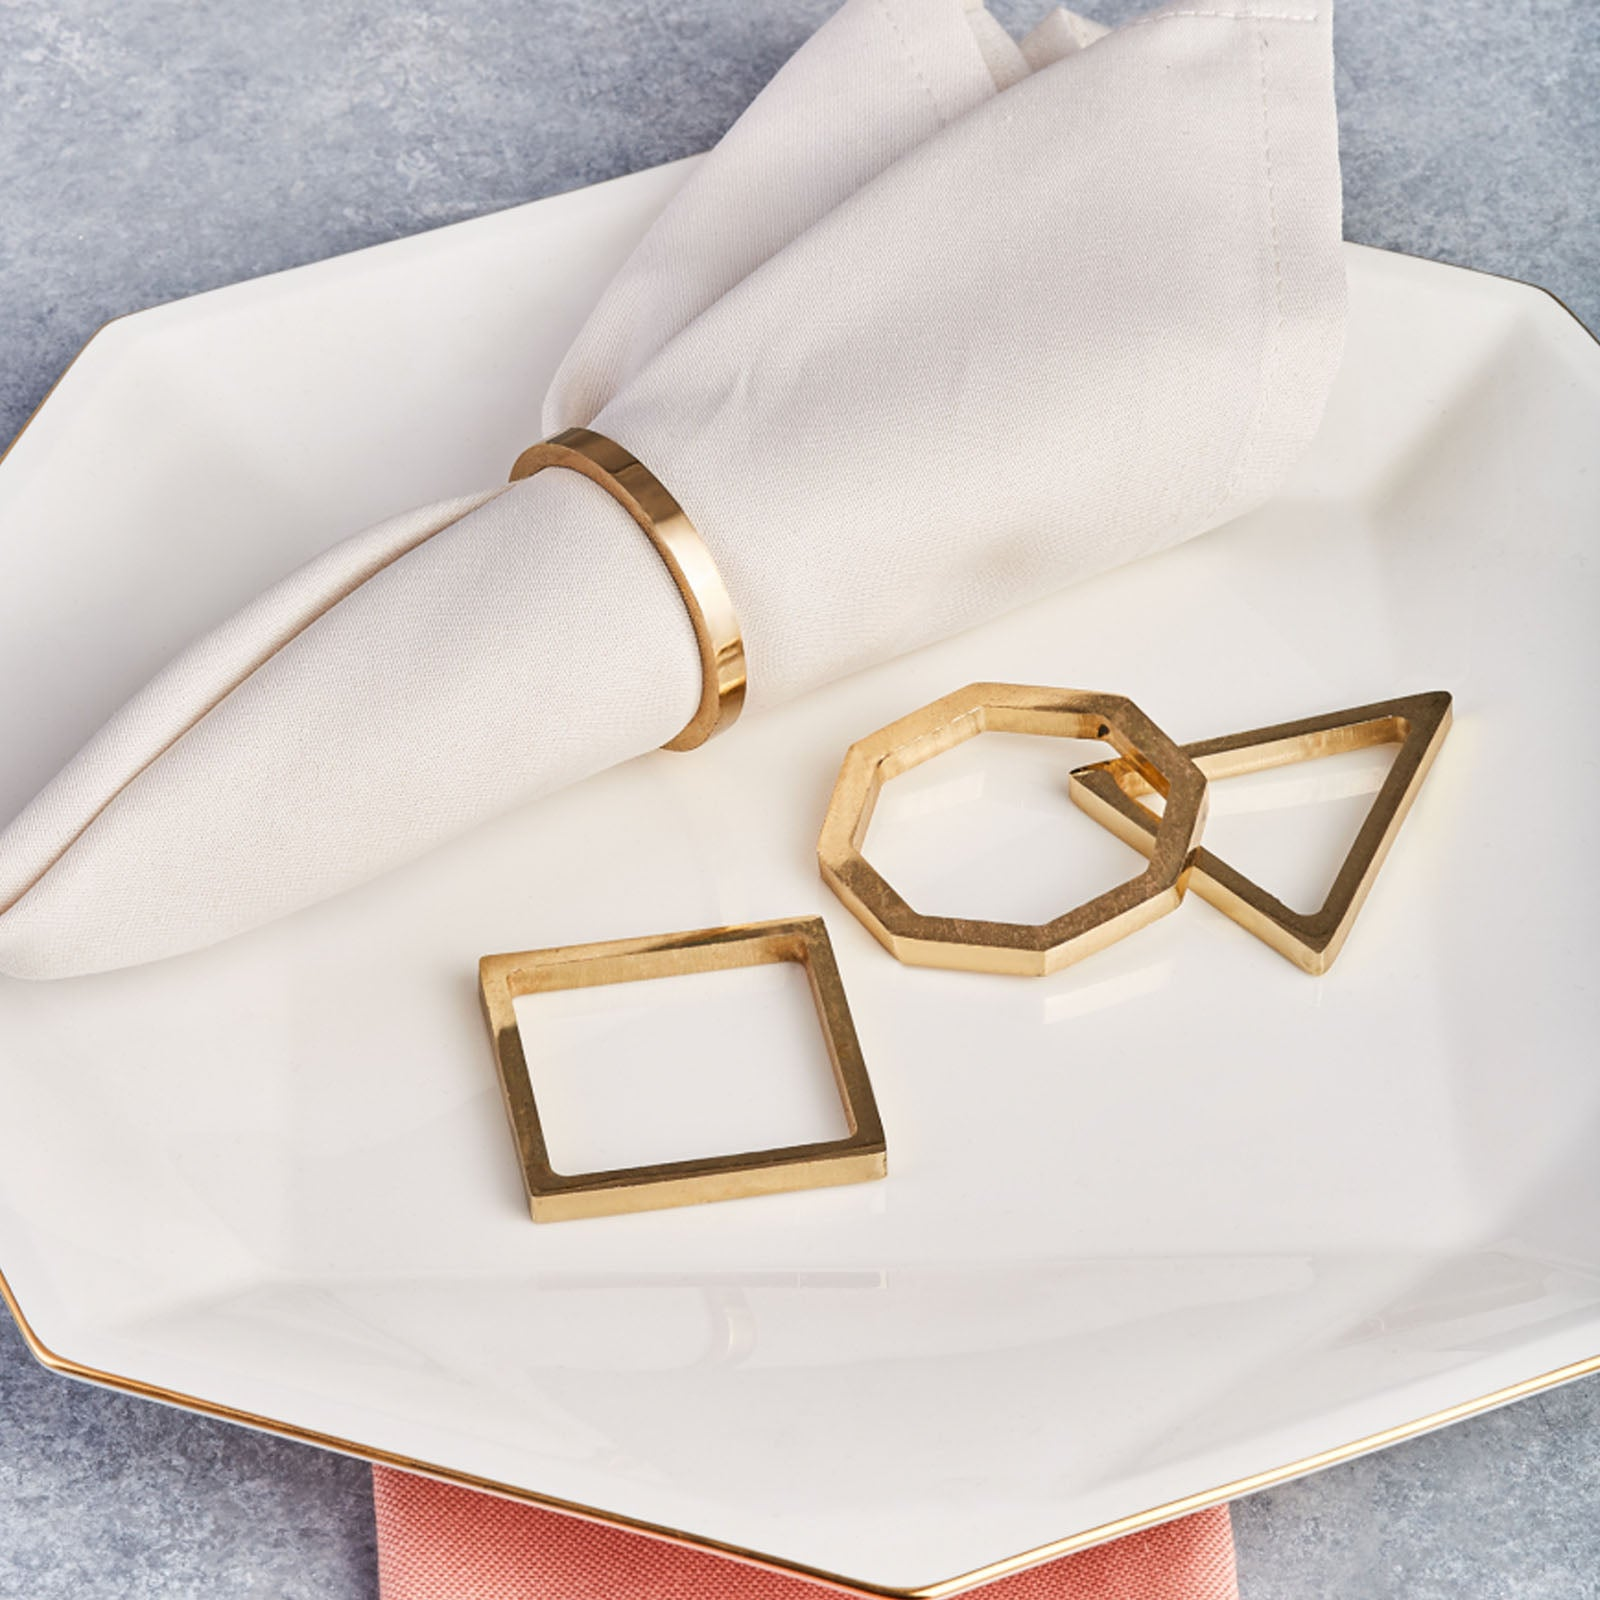 Karaca Geometric 4-Piece Napkin Ring Set Gold 153.19.01.1492